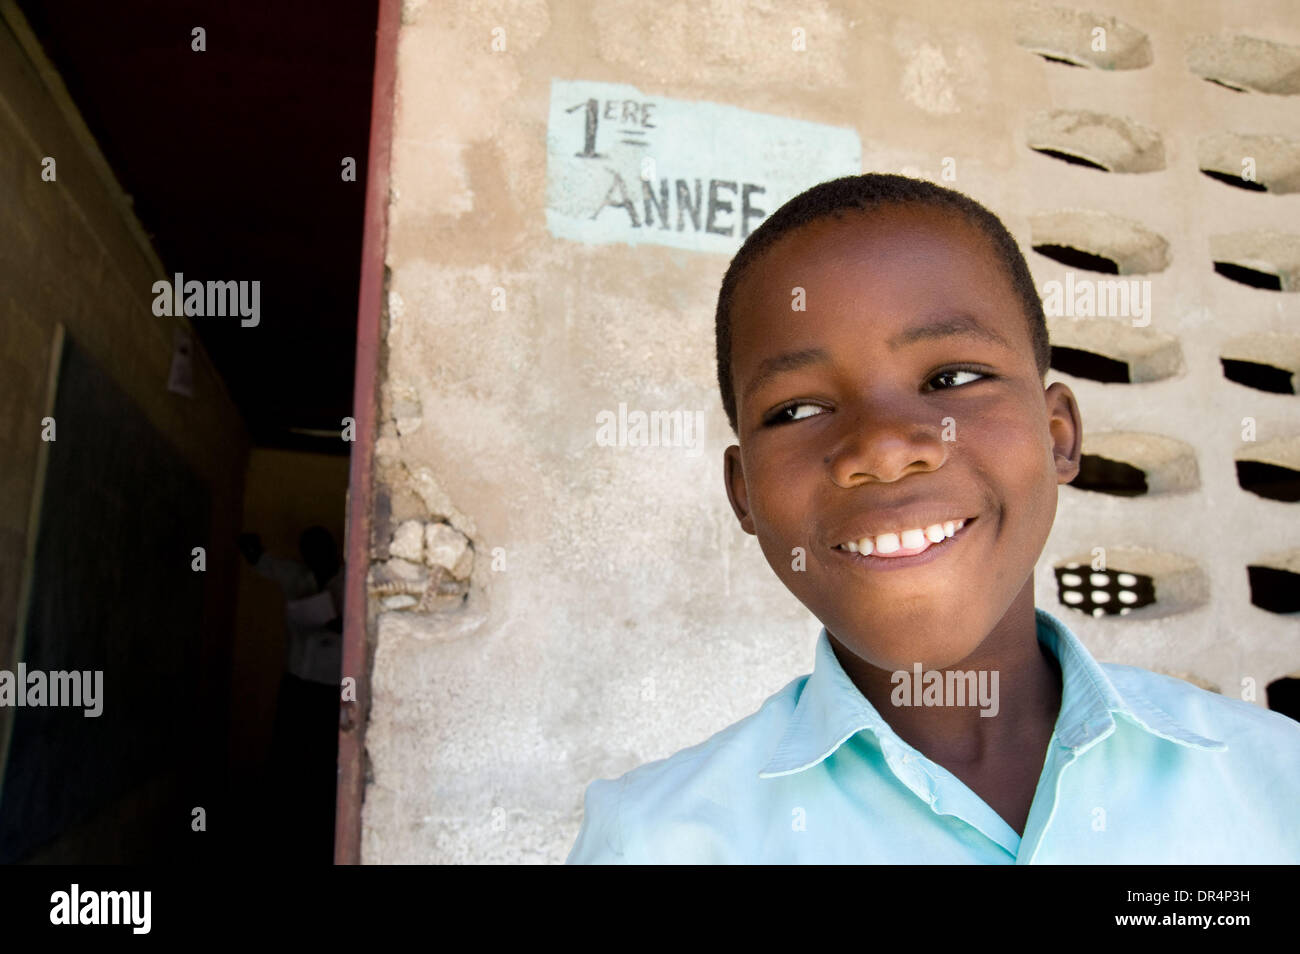 Apr 21, 2009 - Gonaives, Haiti - A young male student, boy, stands outside of his classroom at  a primary school Stock Photo